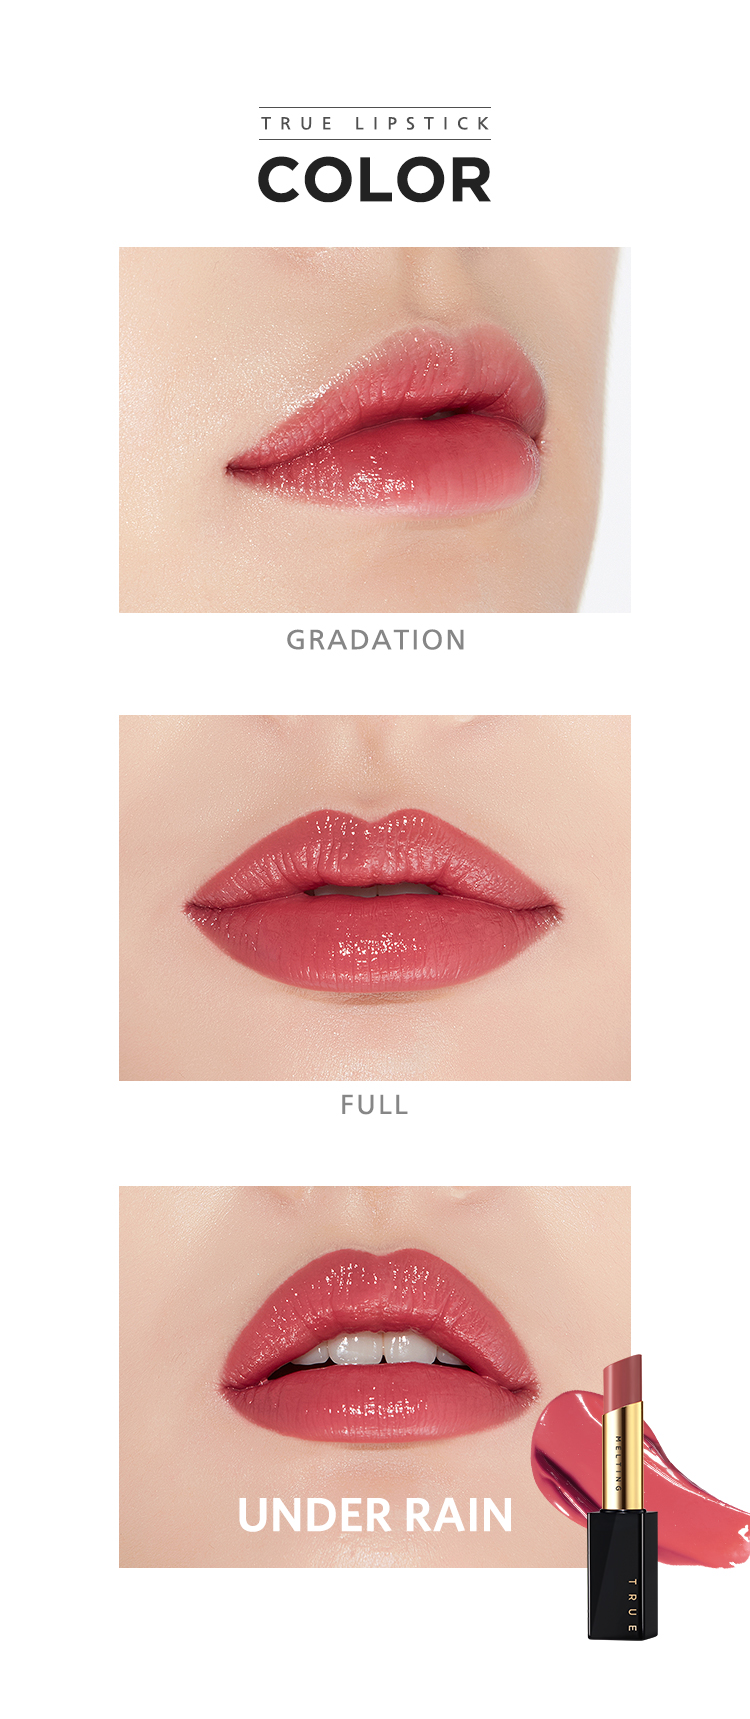 APIEU_True_Melting_Lipstick_bf_CR02_02.jpg